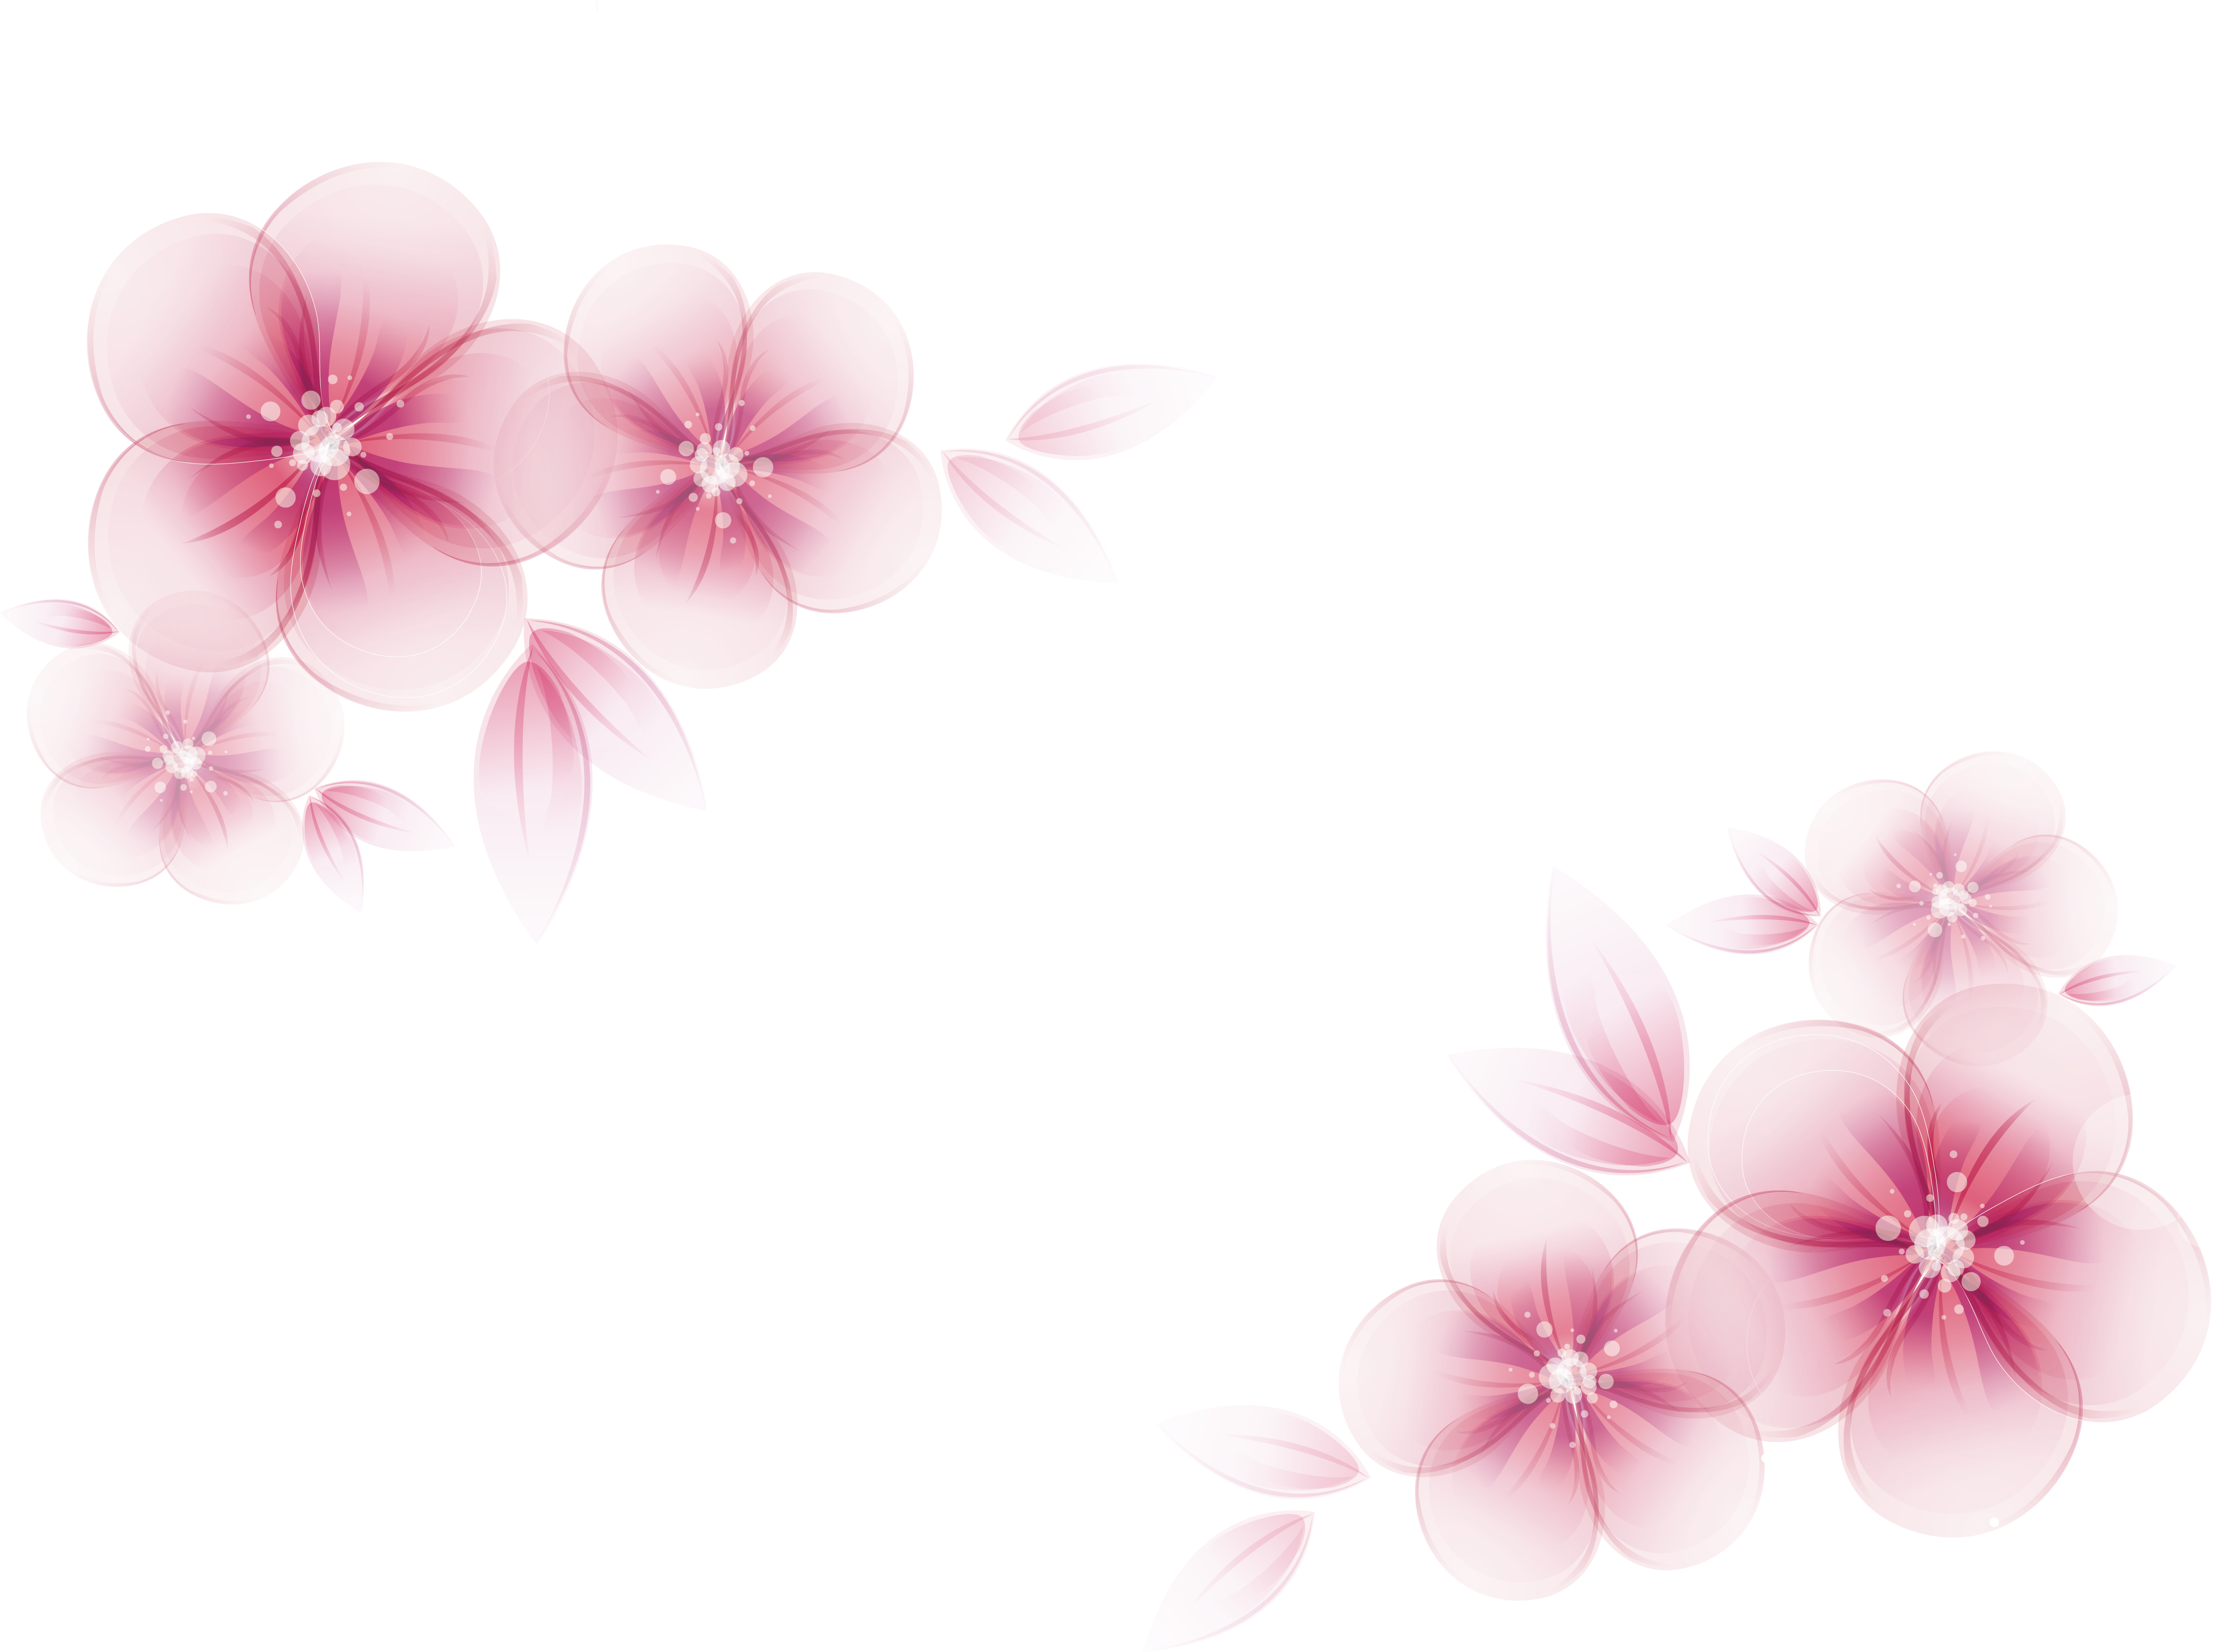 Pink flower vector png. Watercolor painting creative flowers